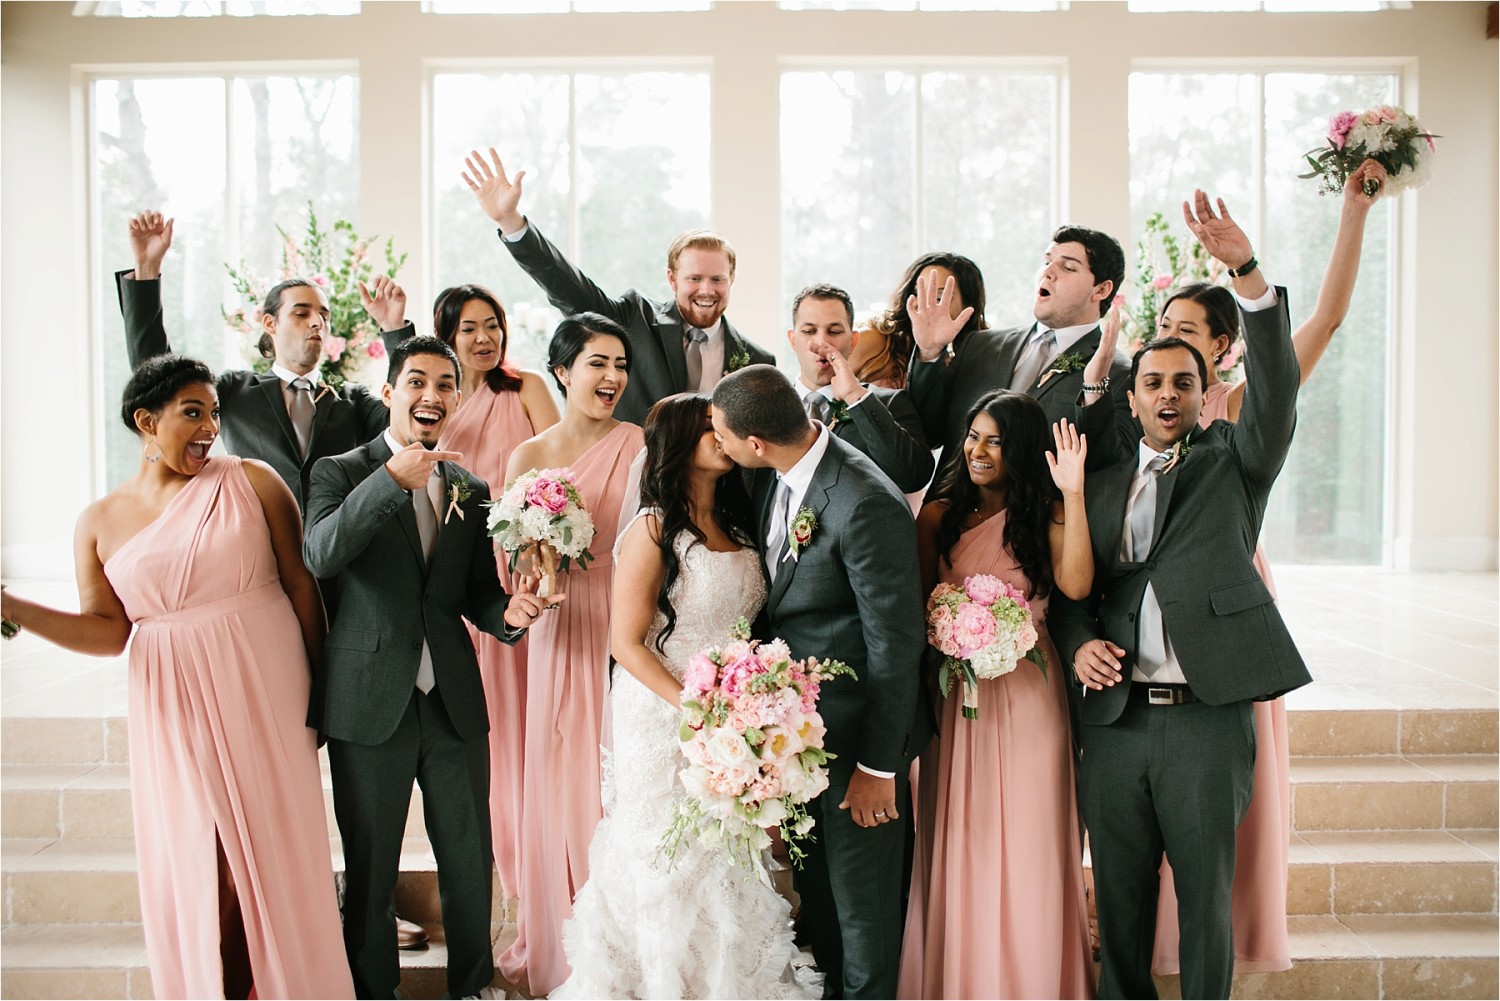 Jeanpaul + Ann __ a colorful wedding at Ashton Gardens in Houston TX by North Texas Wedding Photographer Rachel Meagan Photography _ 33